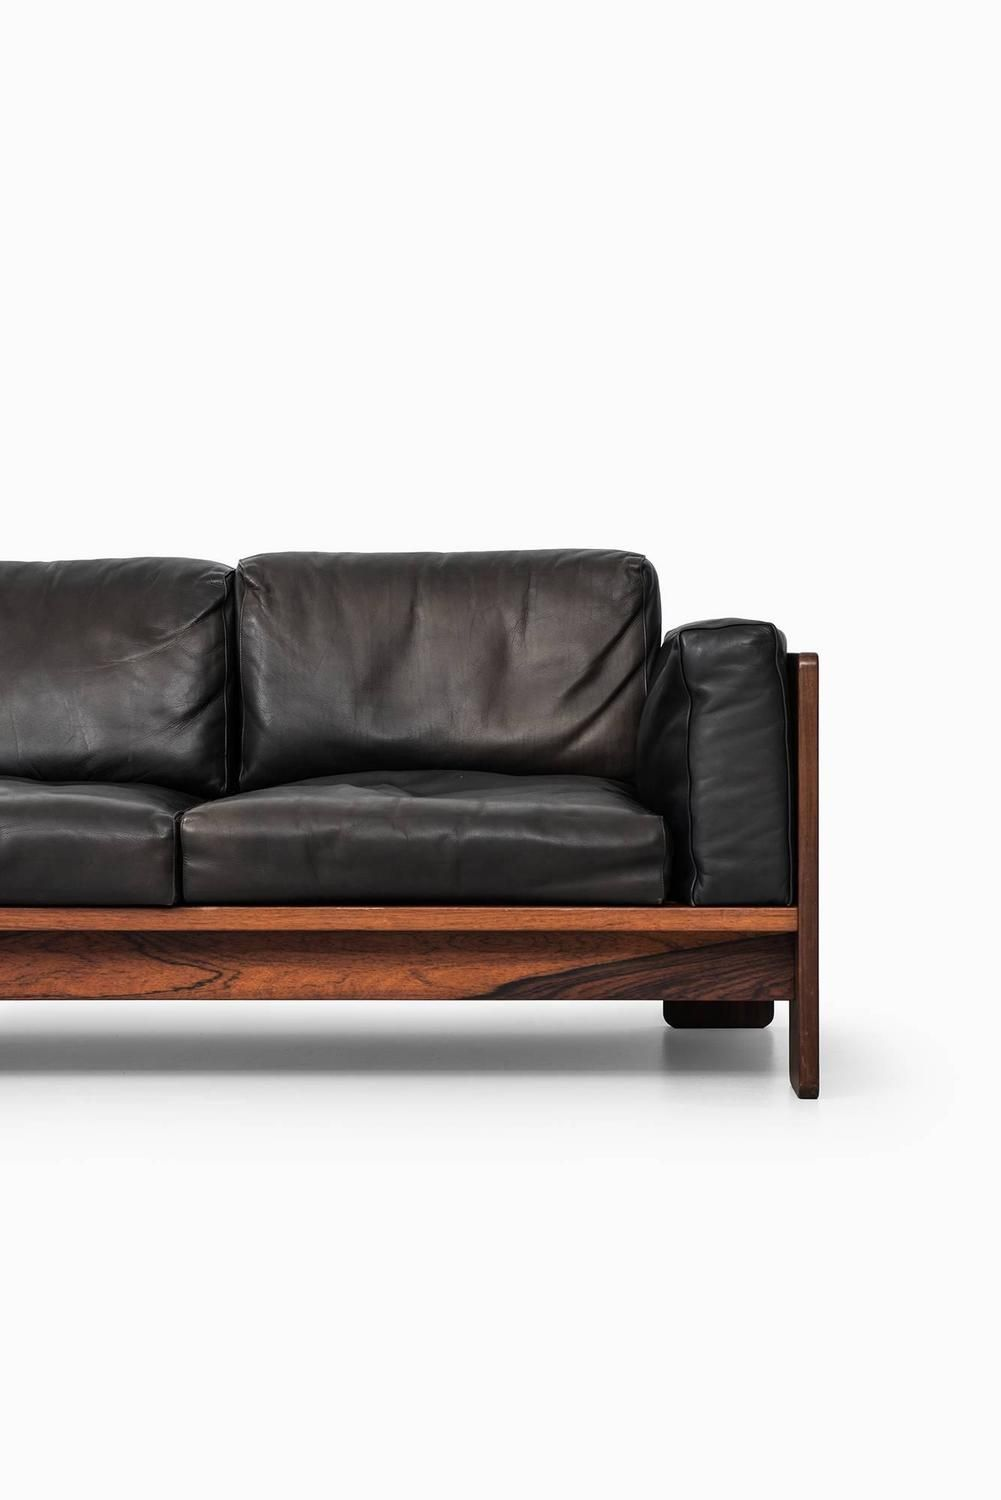 Tobia Scarpa Sofa Model Bastiano Produced by